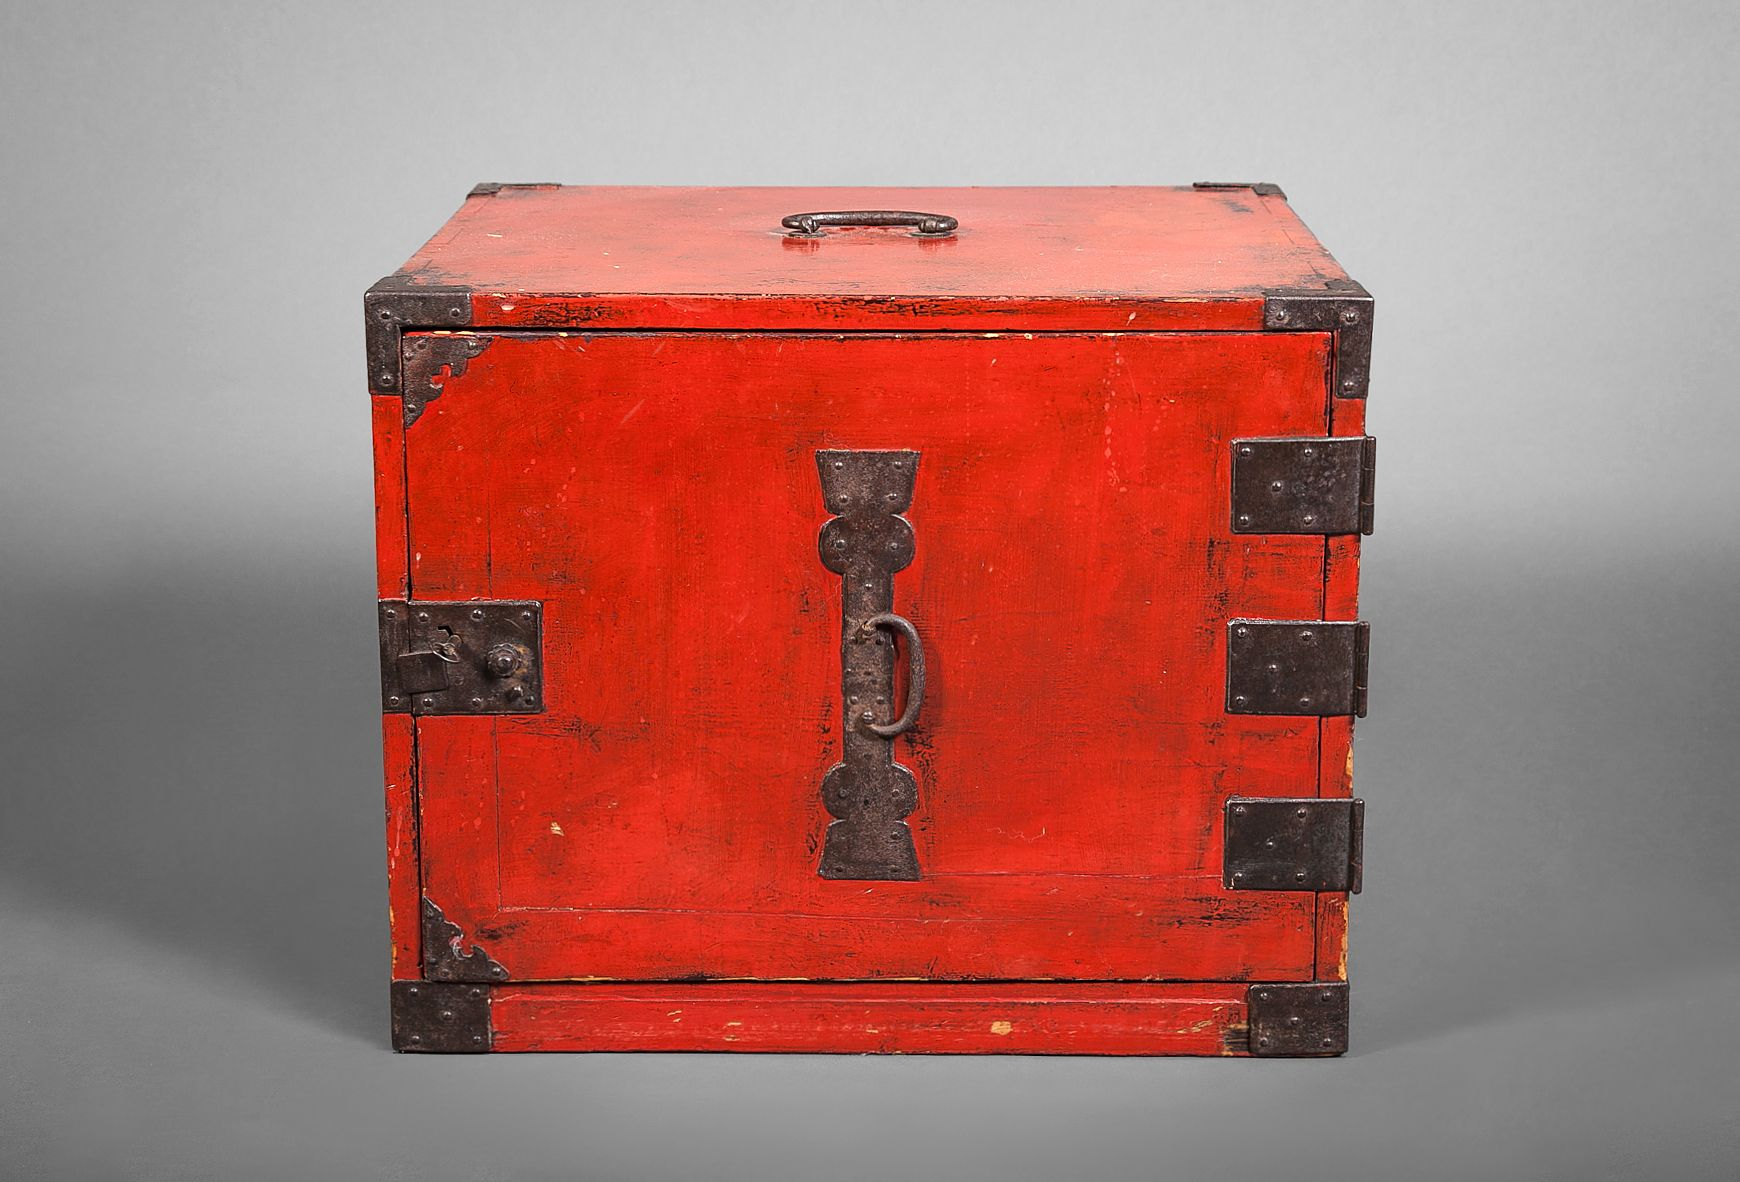 Red Lacquer Ship's Tansu (Chest) Japan 19th century